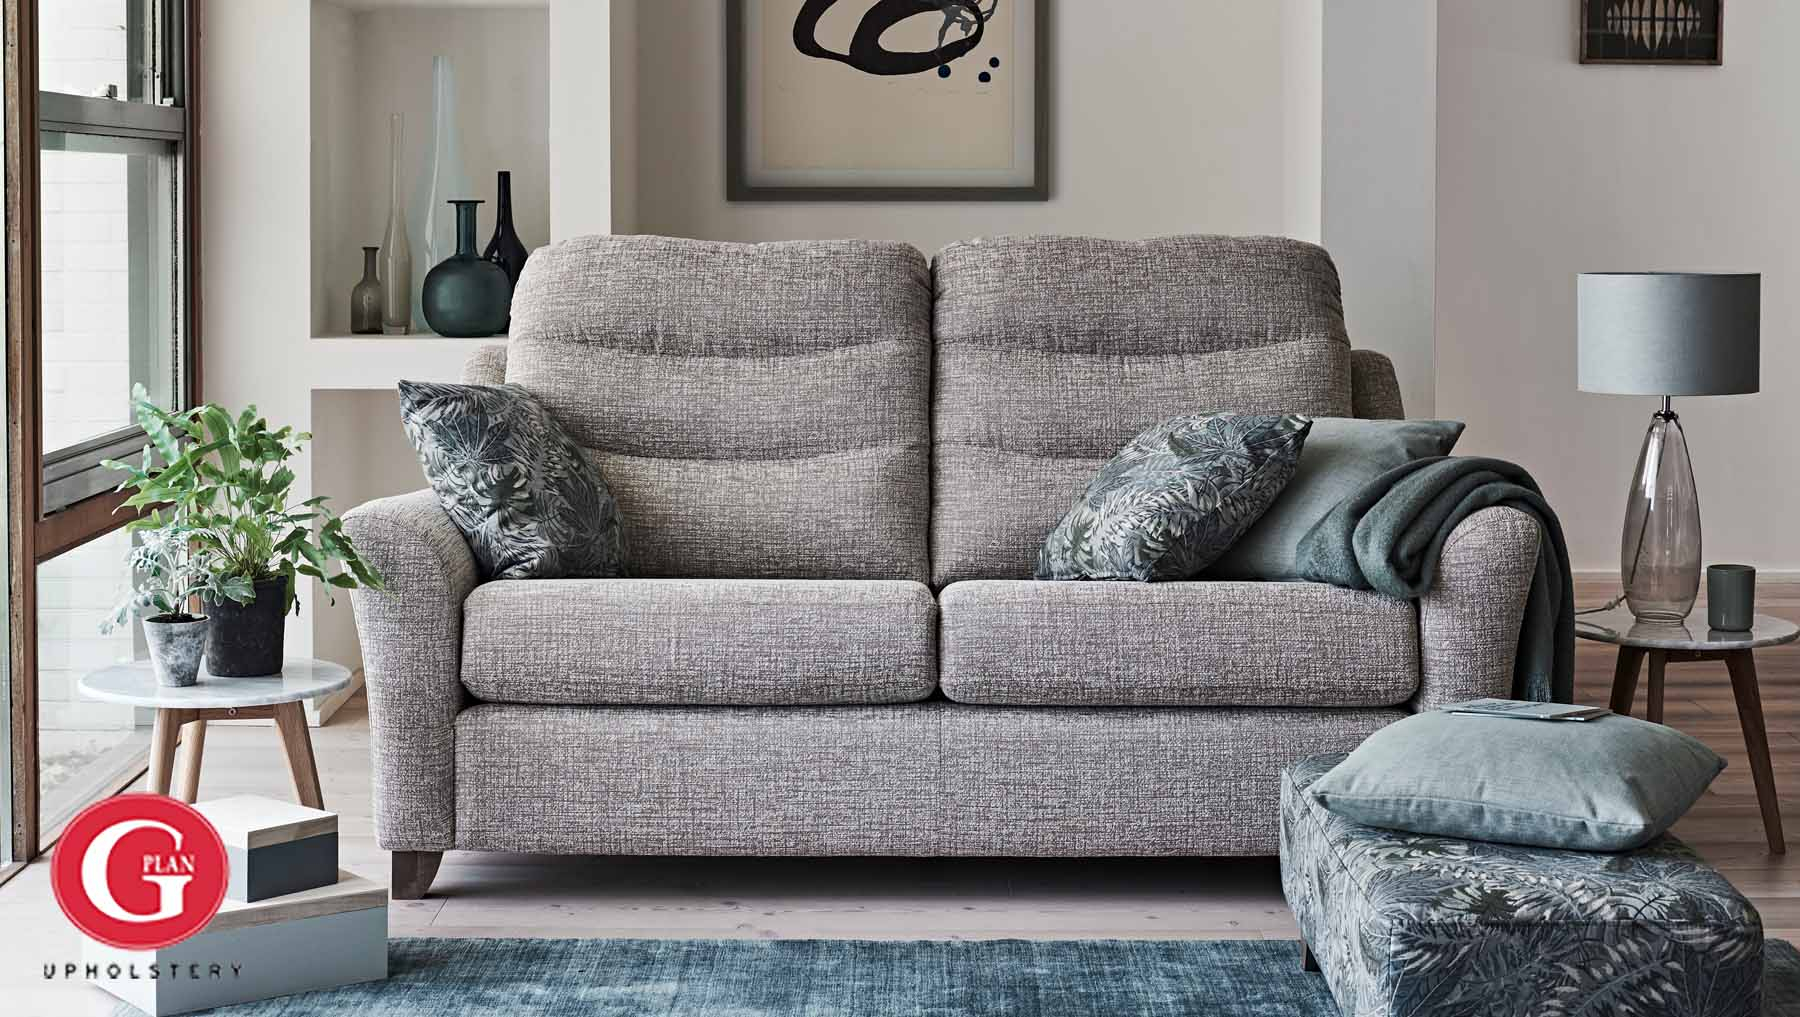 G Plan Tate – Fabric Ranges – Sofas & Chairs | Tr Hayes – Furniture With Tate Arm Sofa Chairs (View 18 of 25)